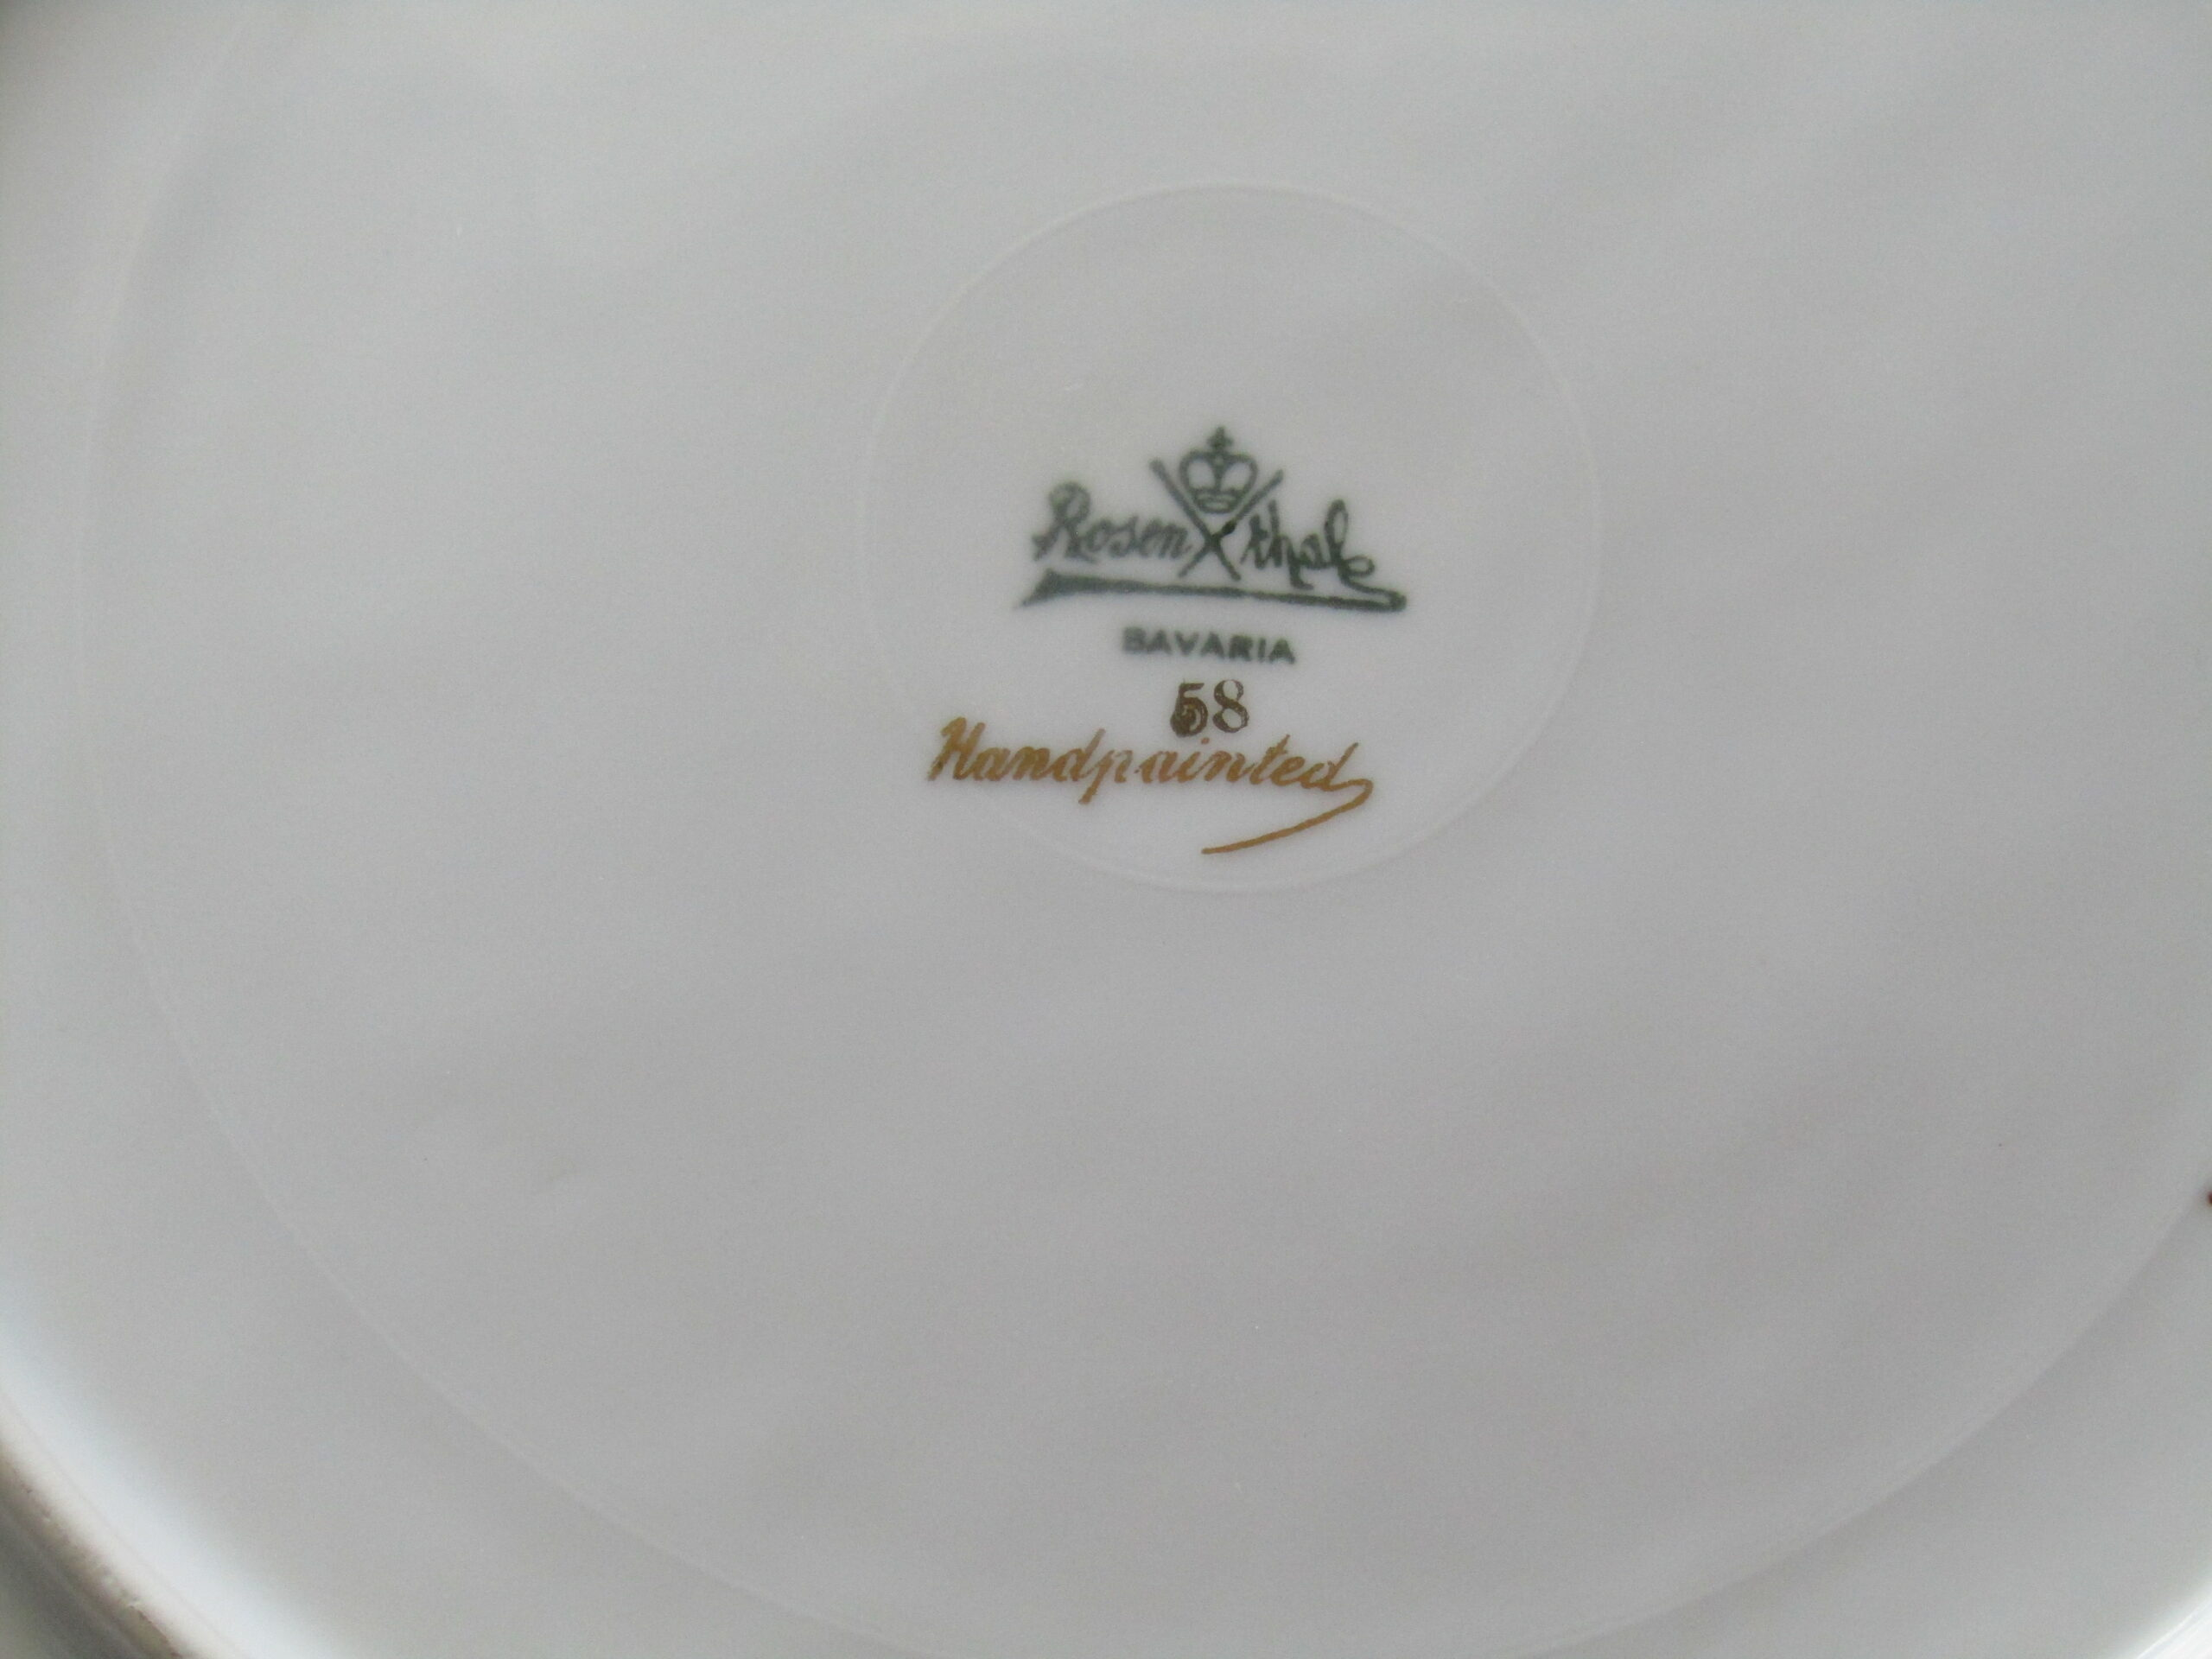 C19a. mark on cake plate